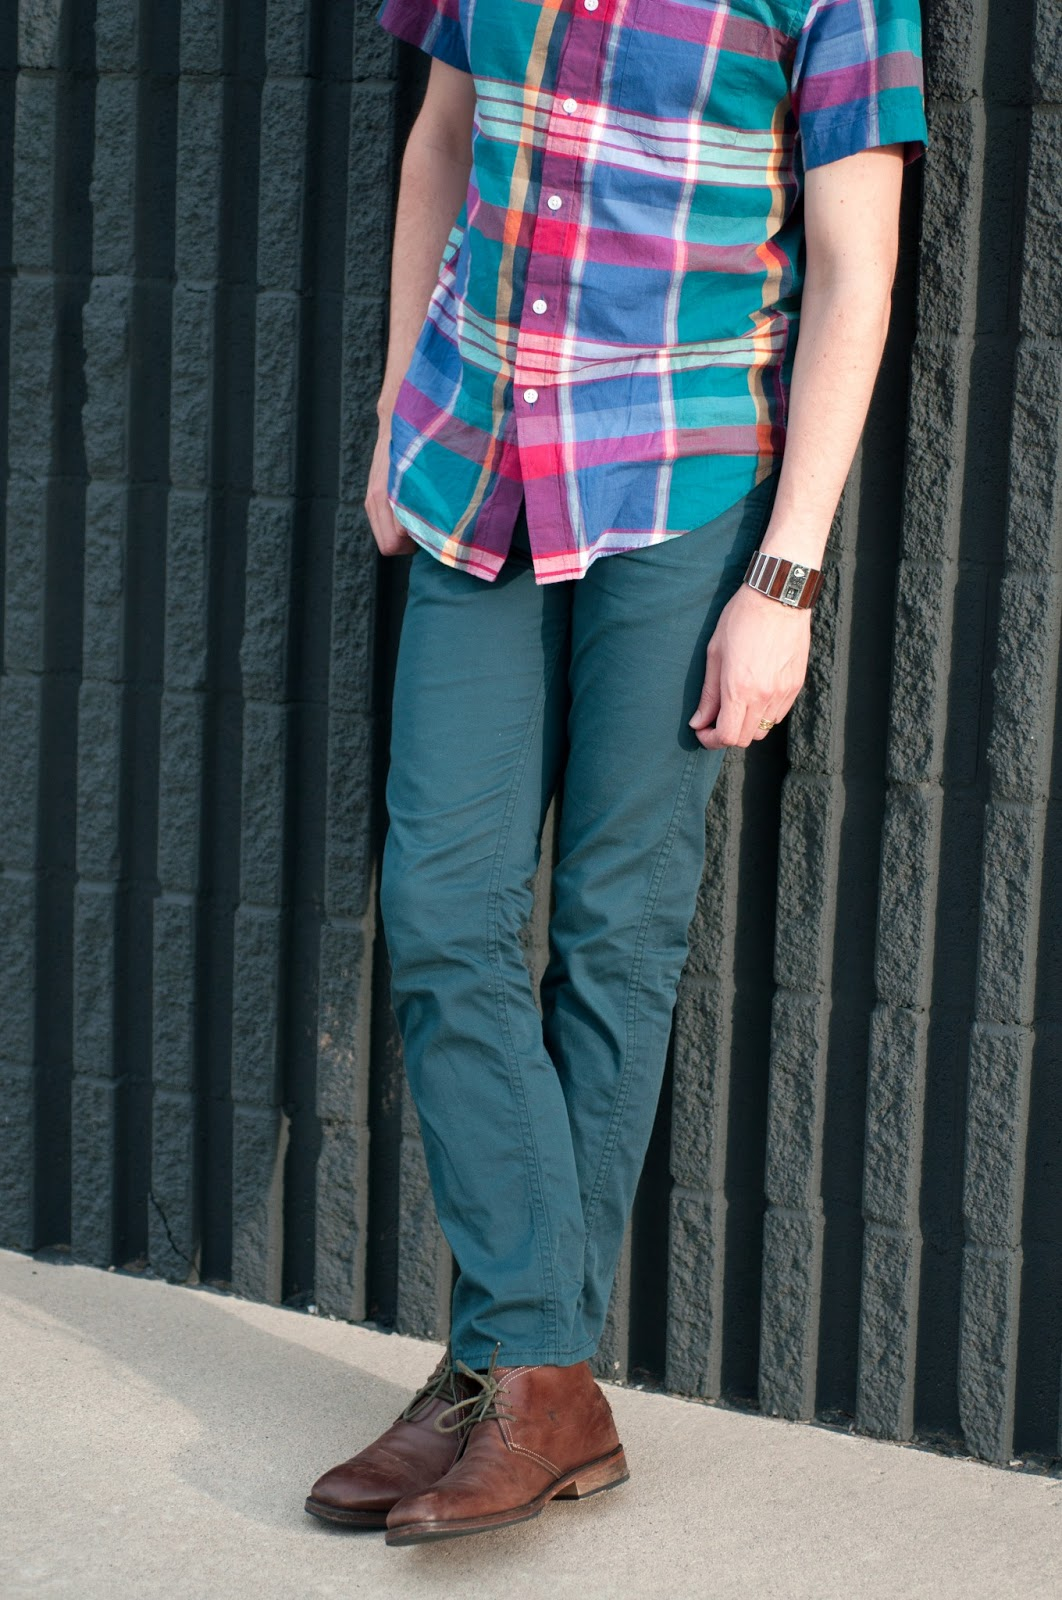 fashion blog, style blog, style blogger, fashion blogger, mens style, mens fashion blog, mens style blog, jcrew, jcrew short sleeves shirt, jcrew plaid shirt, jcrew mens style, ootd, jcrew ootd, anthropologie ootd, levis 510, levis 510 modern essential 5 pocket pant, gordon rush, gordon rush boot, gordon rush mathias, mathias, nixon wood rotolog, nixon, nixon watch, wood watch, antonio melani, cheetah print, ombre, navy, pink, miss albright, miss albright geo cut patent sandals, anthropologie shoes, white sandals, clutch, kate spade, kate spade new york, kate spade new york clutch, bow clutch, topshop, topshop hair clilp, mac, mac lipstick, mac lipstick, mac syrup, ootd,